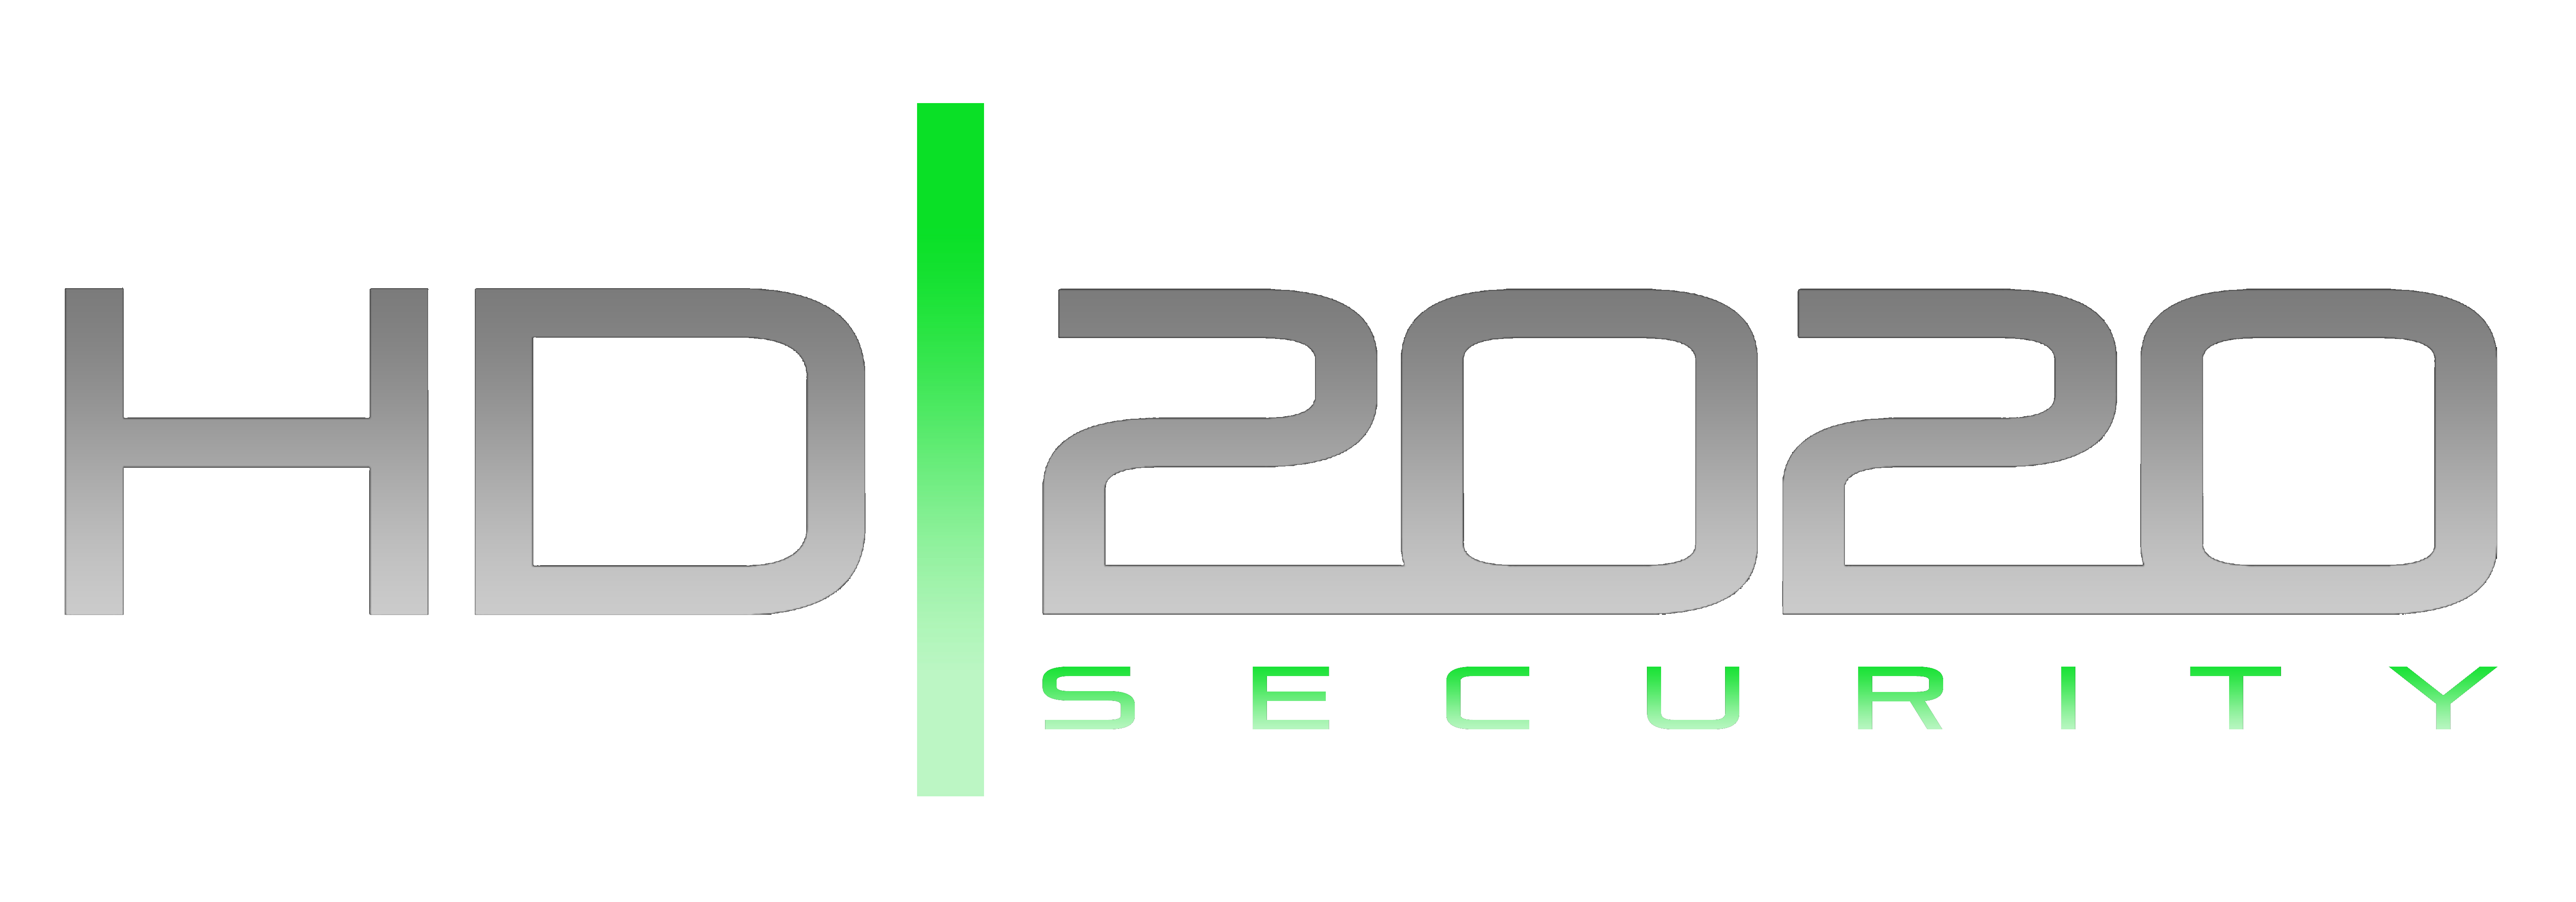 Tampa Security Cameras & CCTV Surveillance Installers